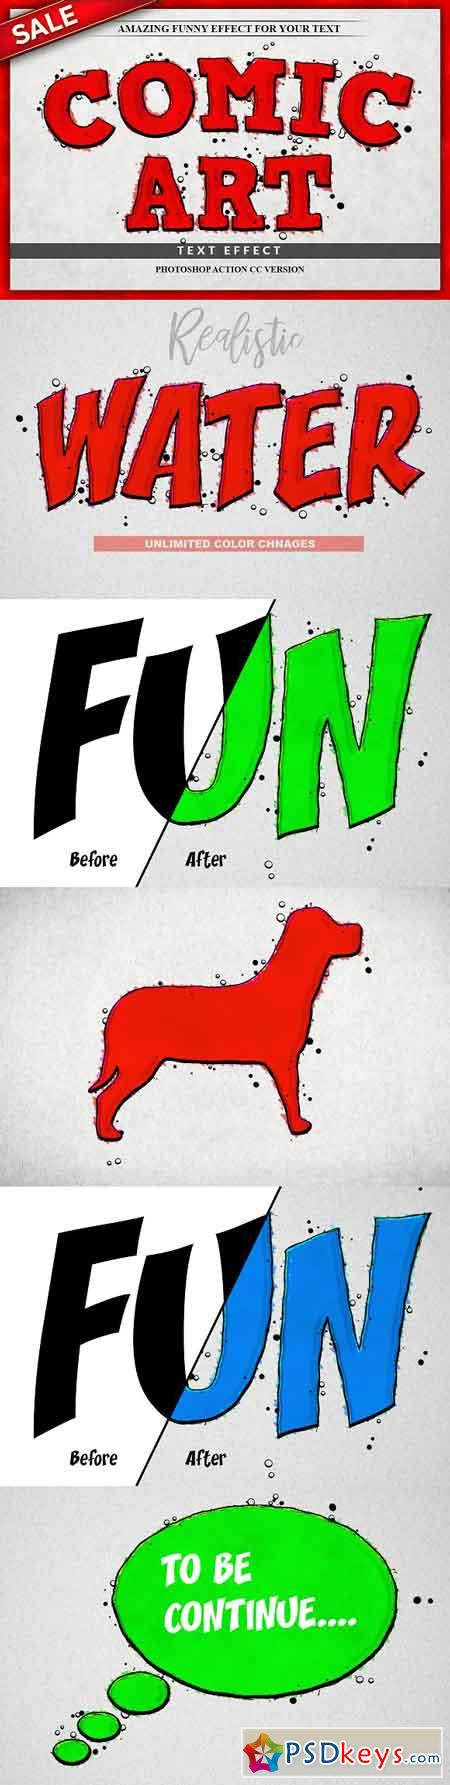 Funny Text Effect Photoshop Action 3206756